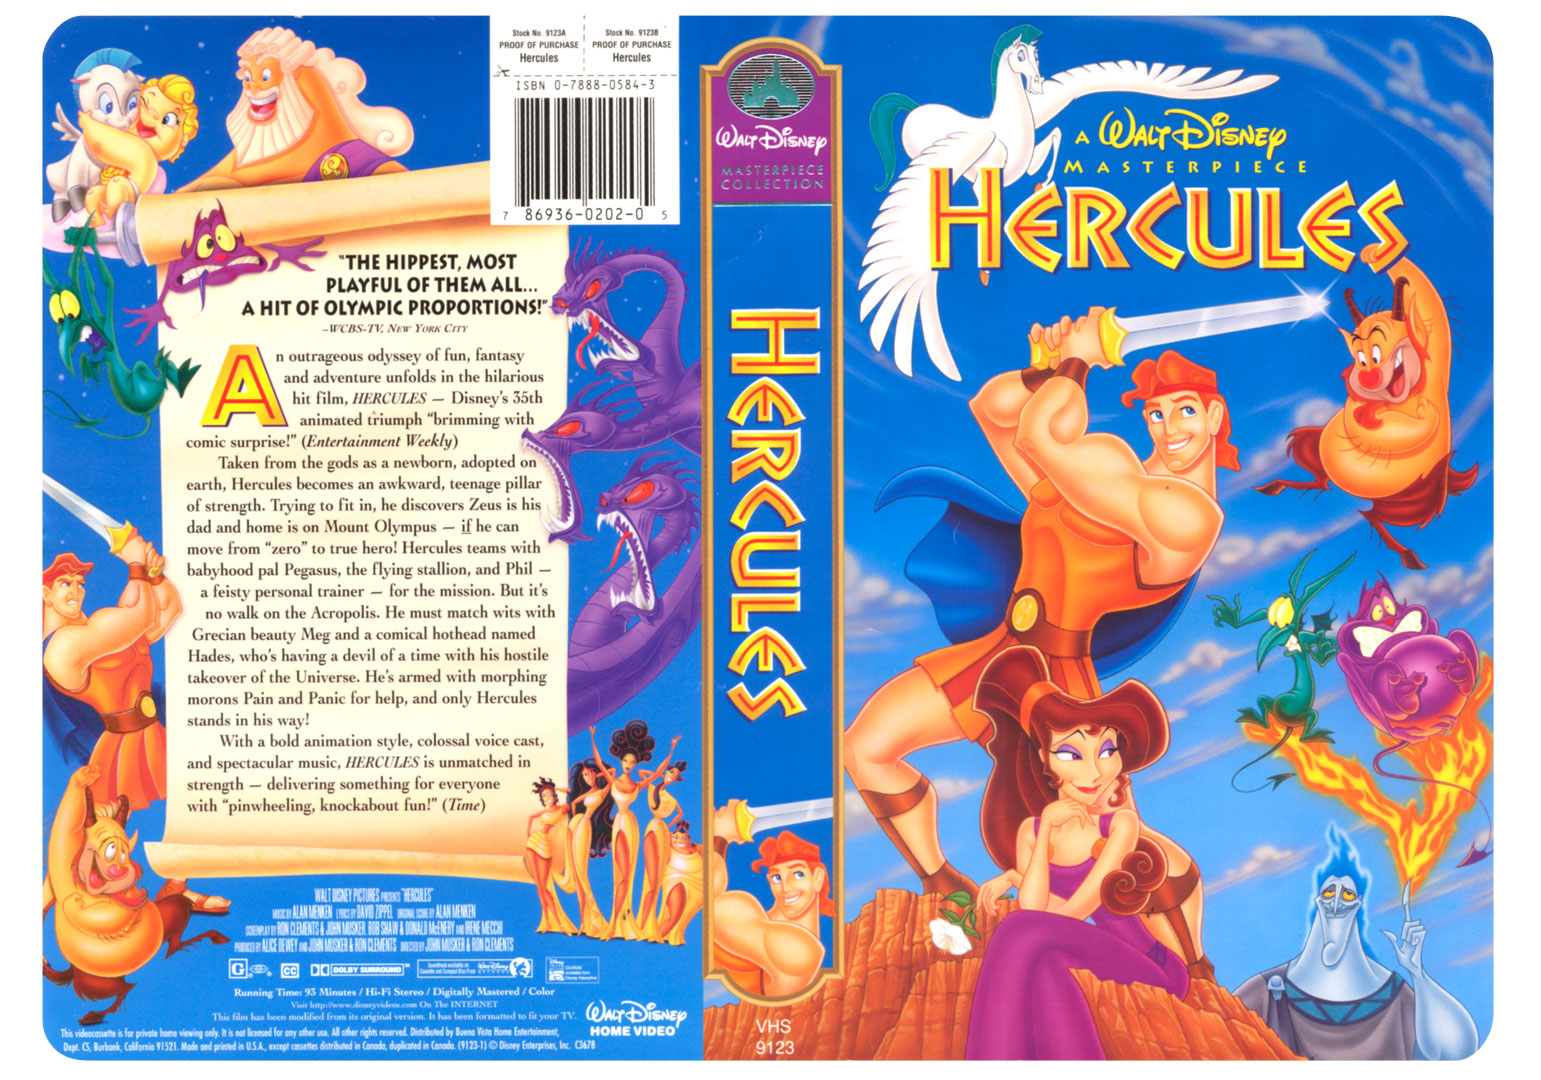 Walt Disney�s Hercules - 1 of an exploratory of 5 designs I created for Buena Vista Home Video. They produced 3 of the 5 comps and this was one of them.